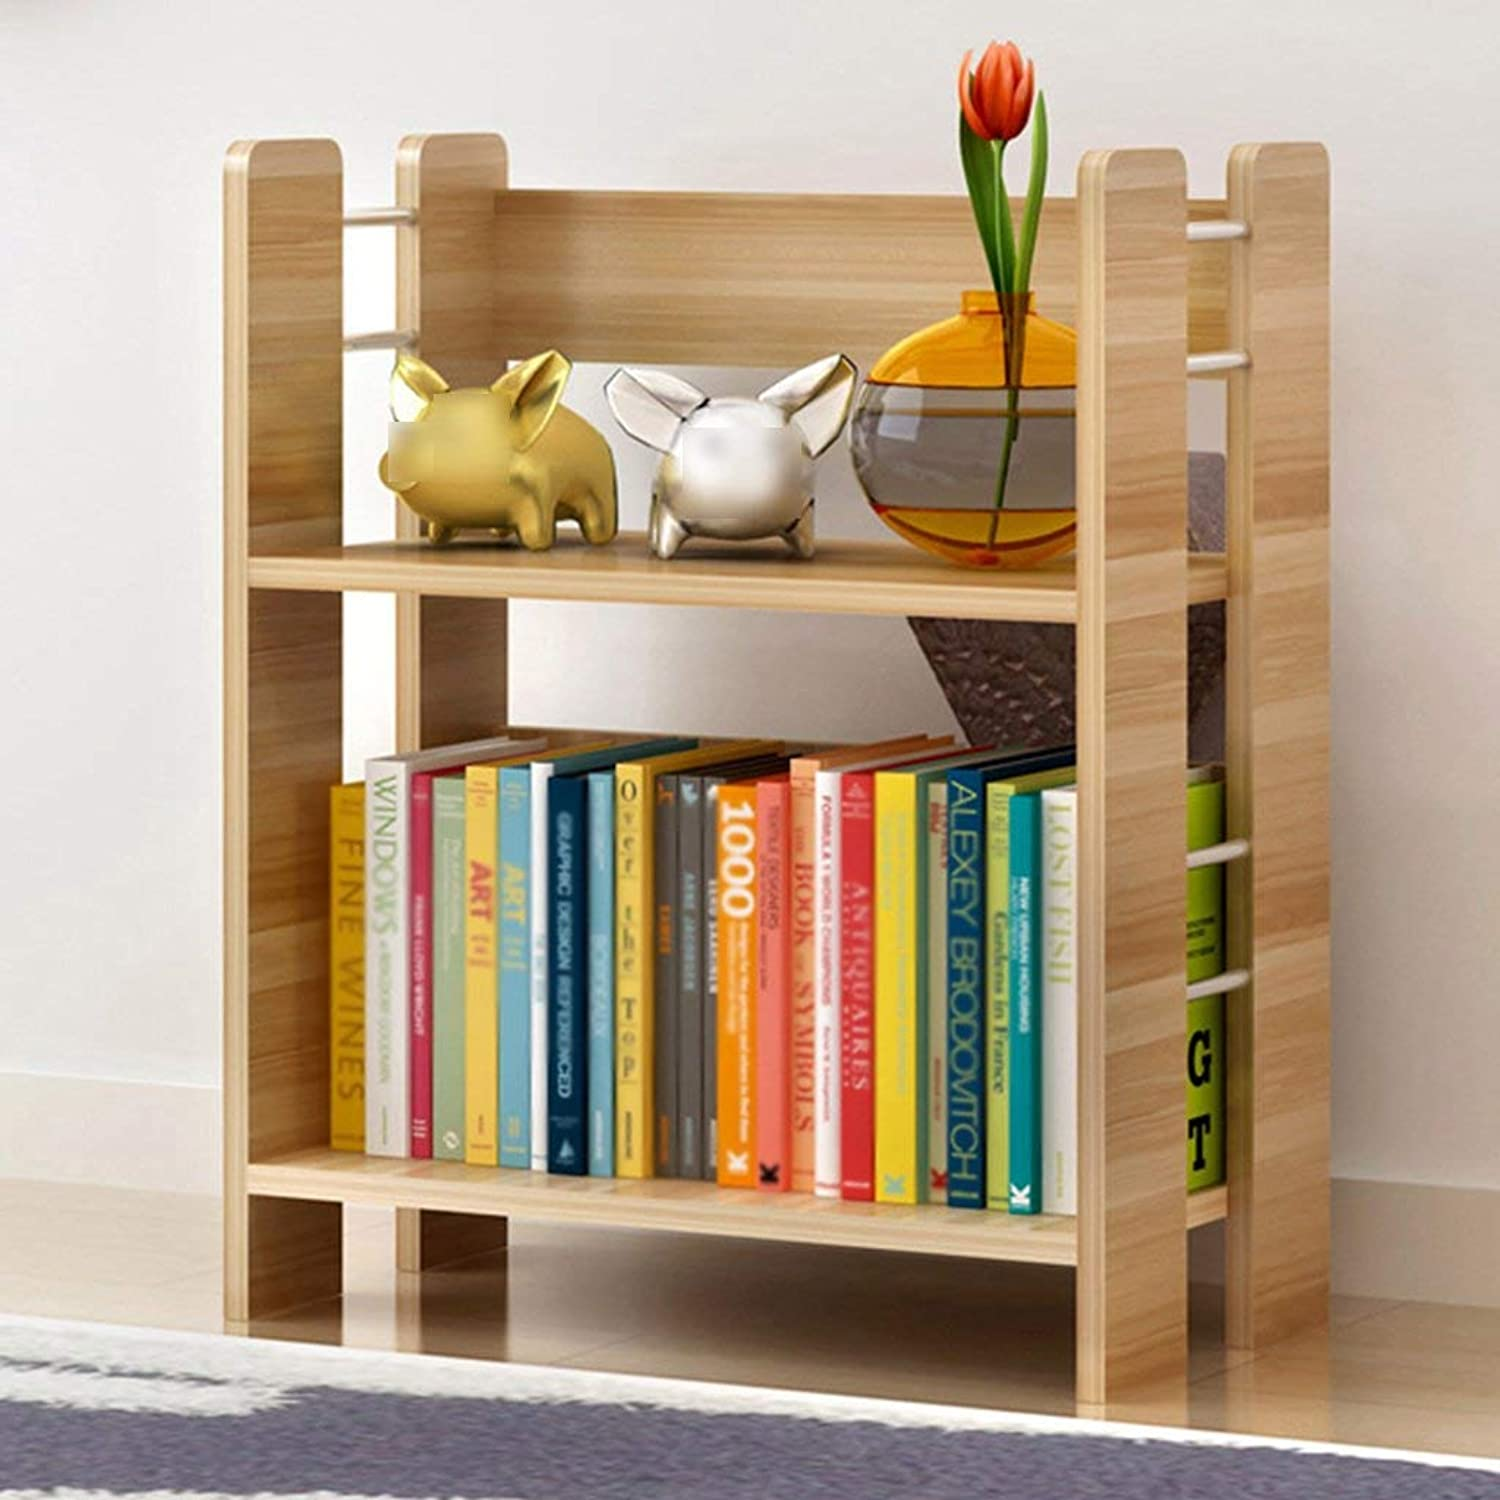 Storage Shelf TH Bookshelf Simple Modern Shelf Creative Landing Small Bookshelf Study Display Stands Bookcase (color   Yellow Wood color, Size   4-Tier) Home Stand